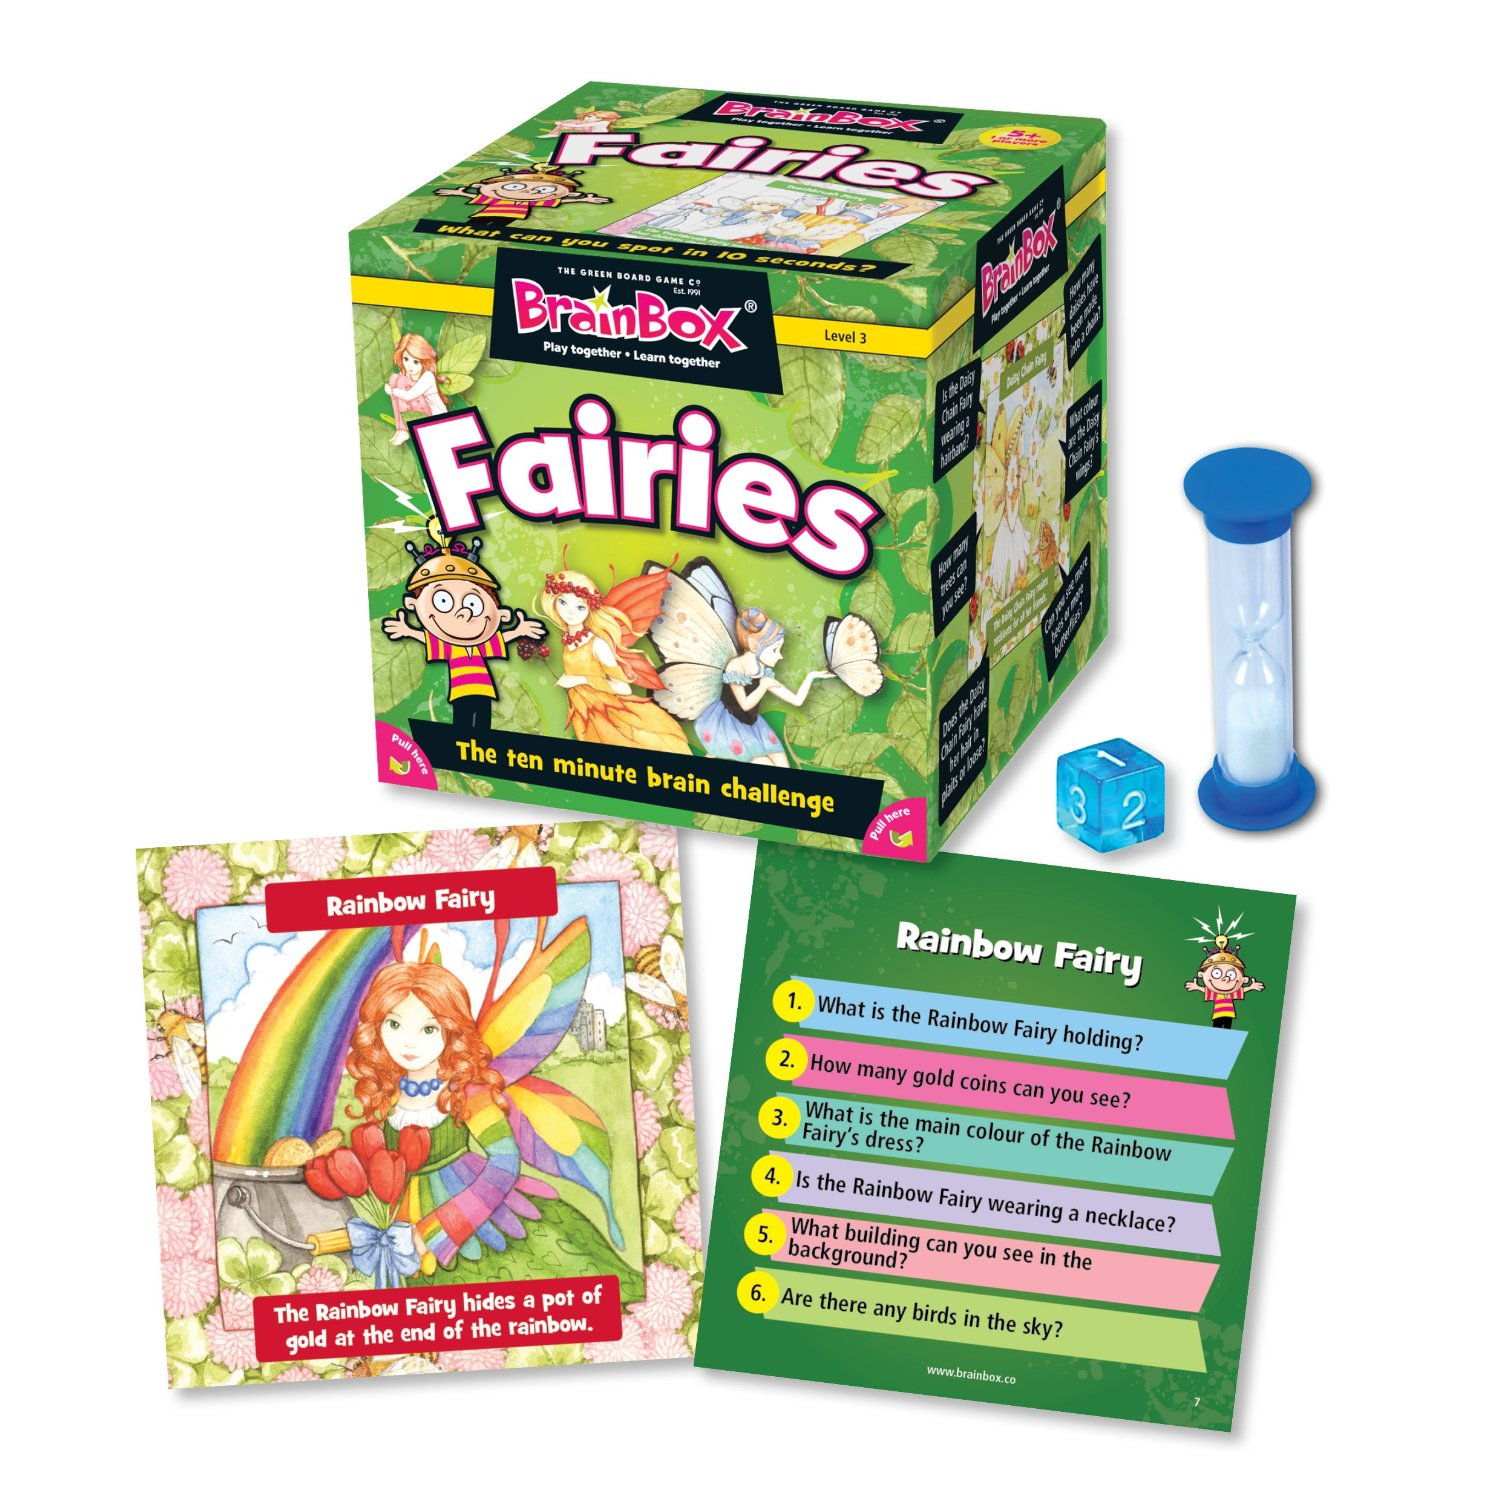 BrainBox Fairies Review